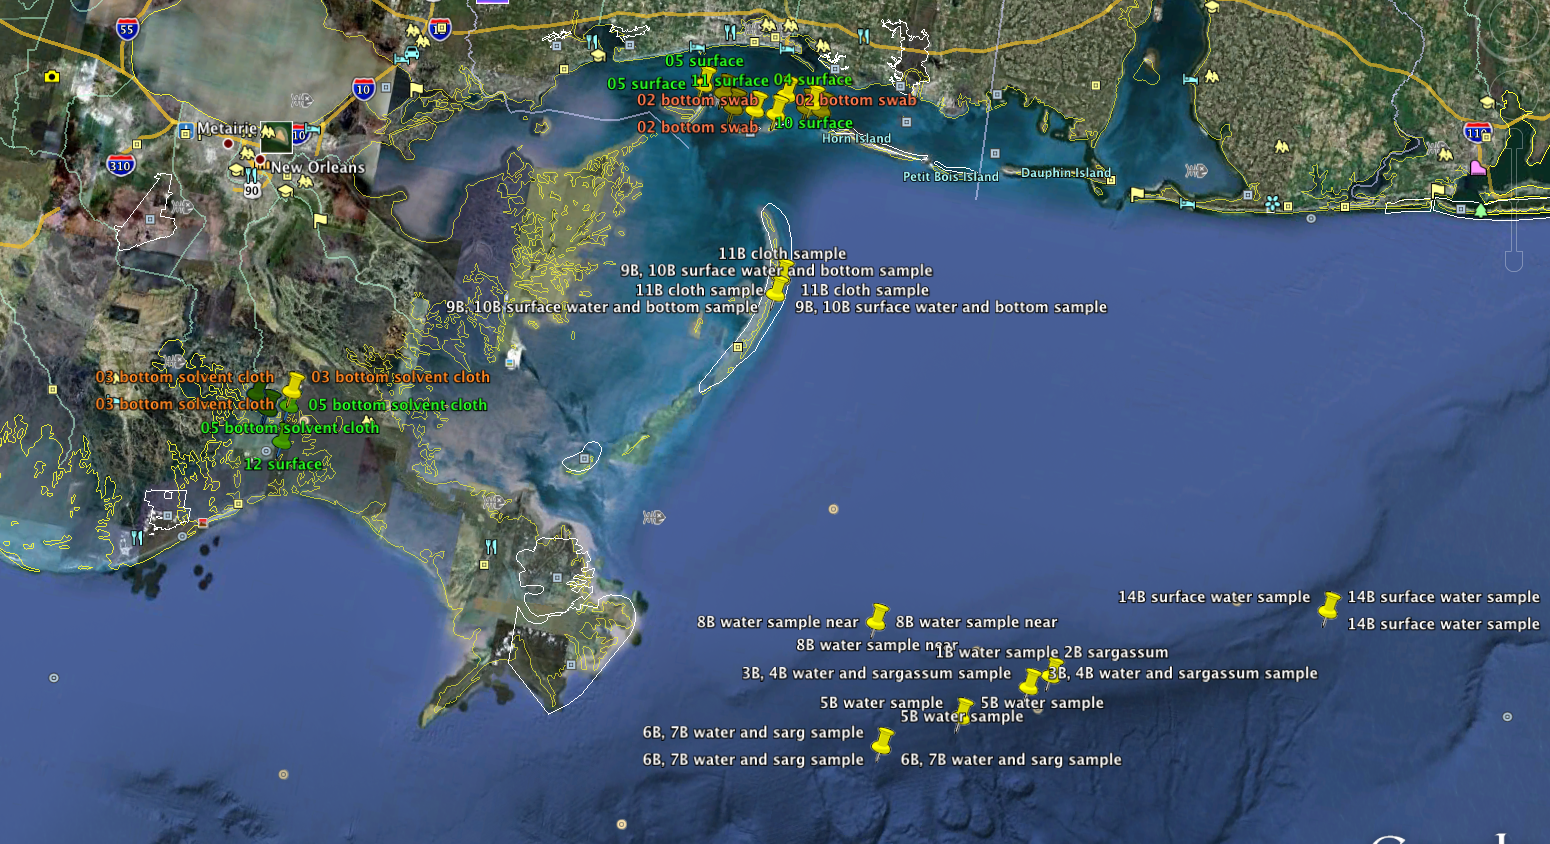 GULF SamplingMap_Water&Oil&Seafood_20100830